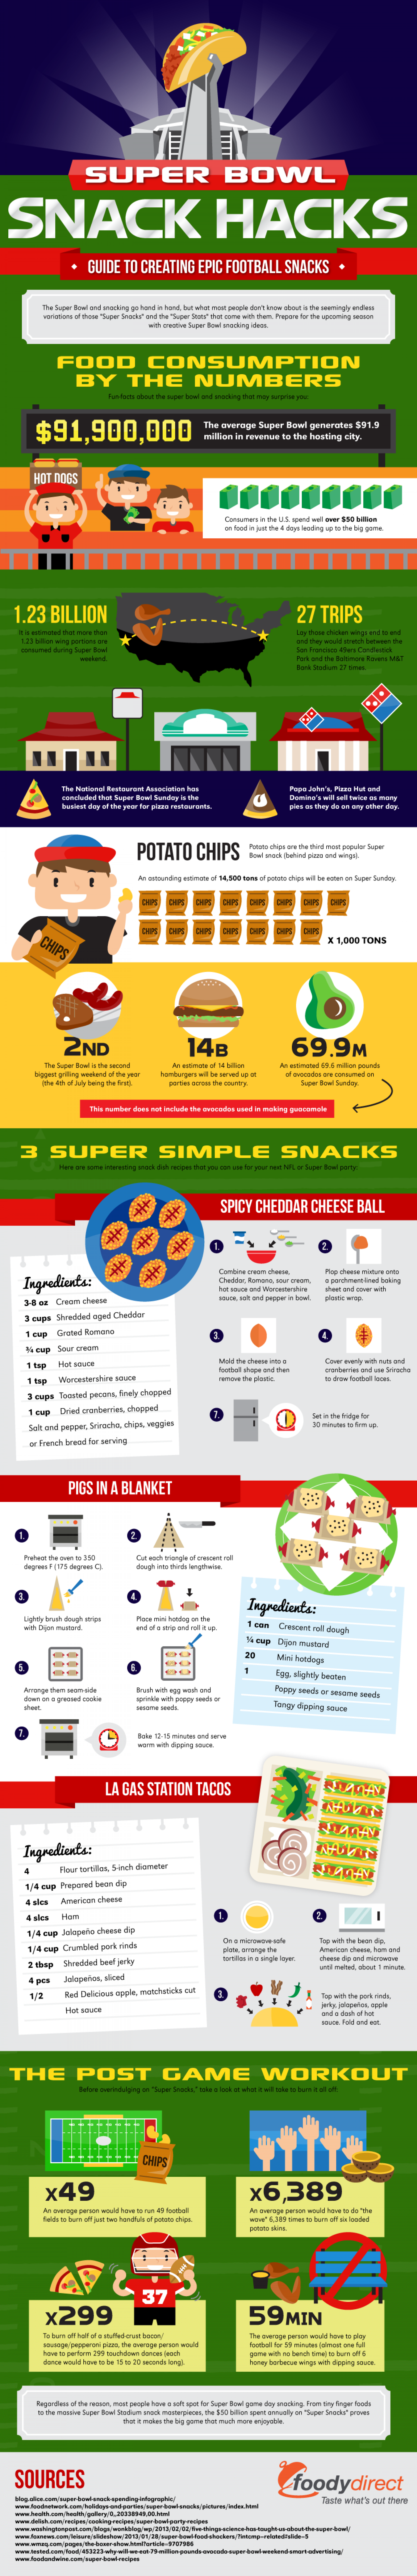 Super Bowl Snack Hack Infographic